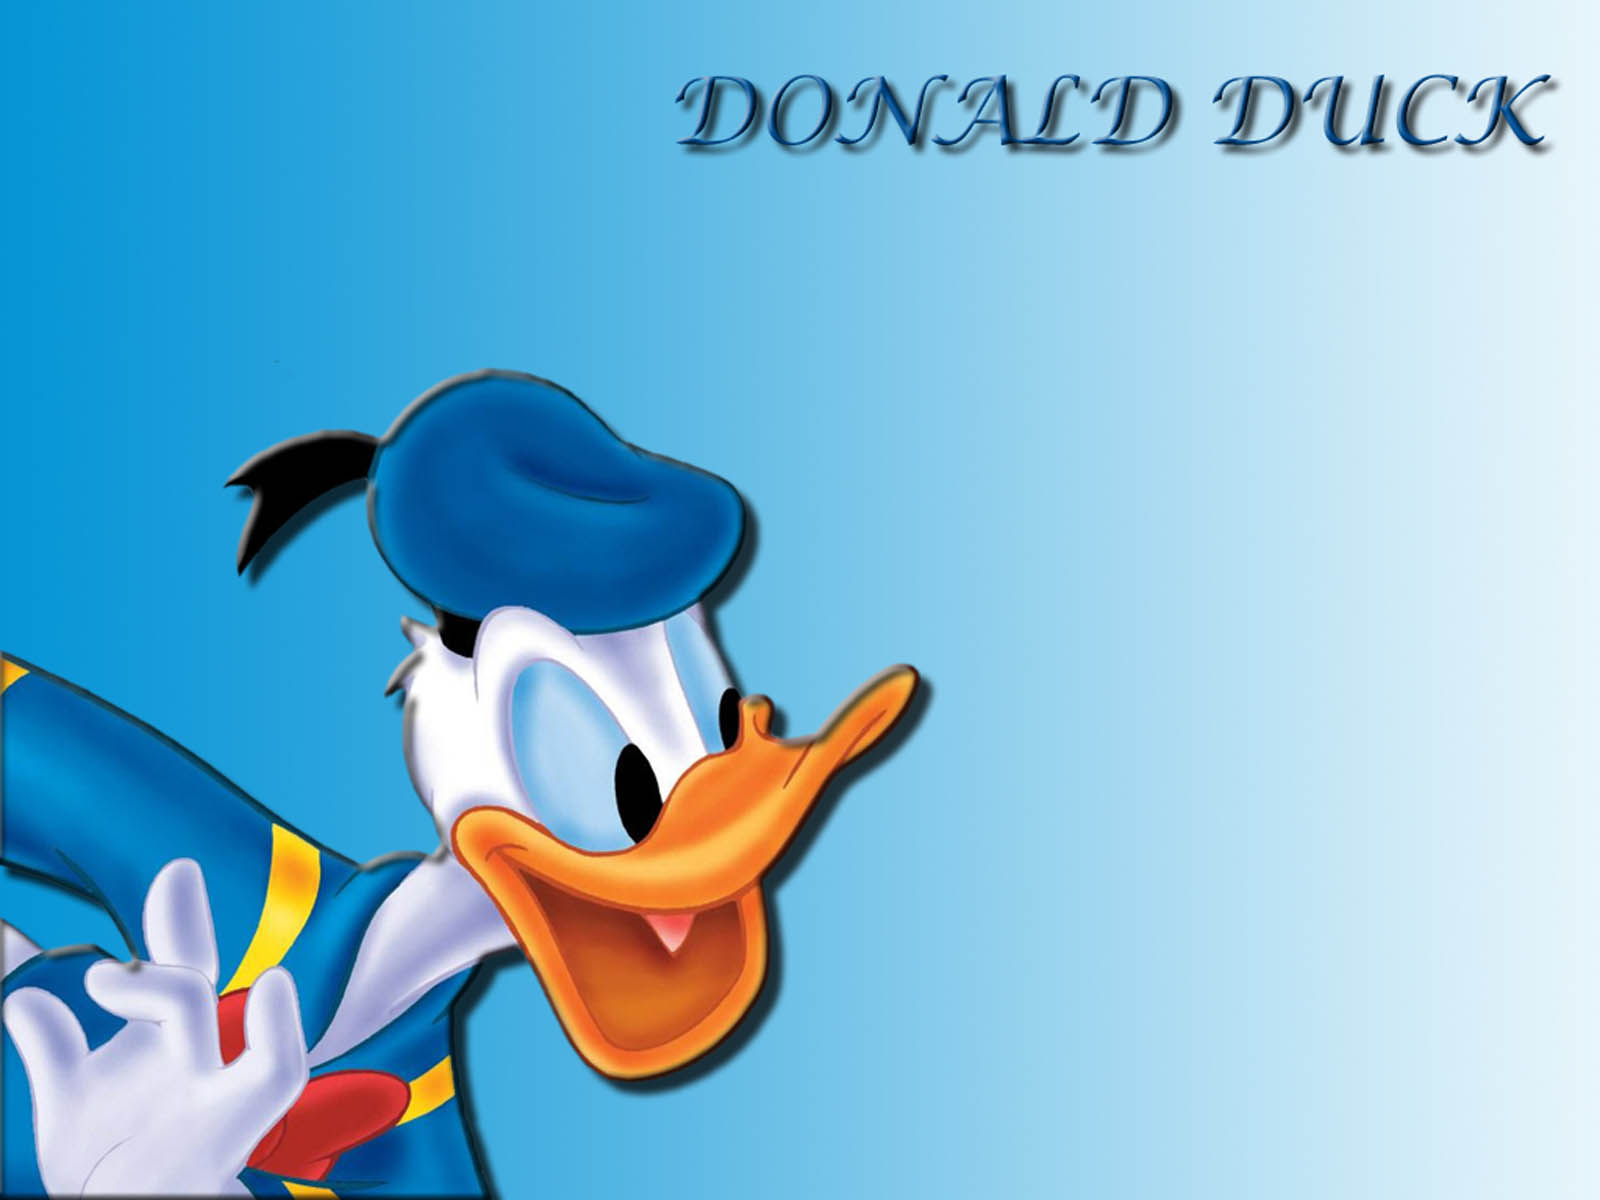 Duck Sounds | Free Sound Effects | Duck Sound Clips ...